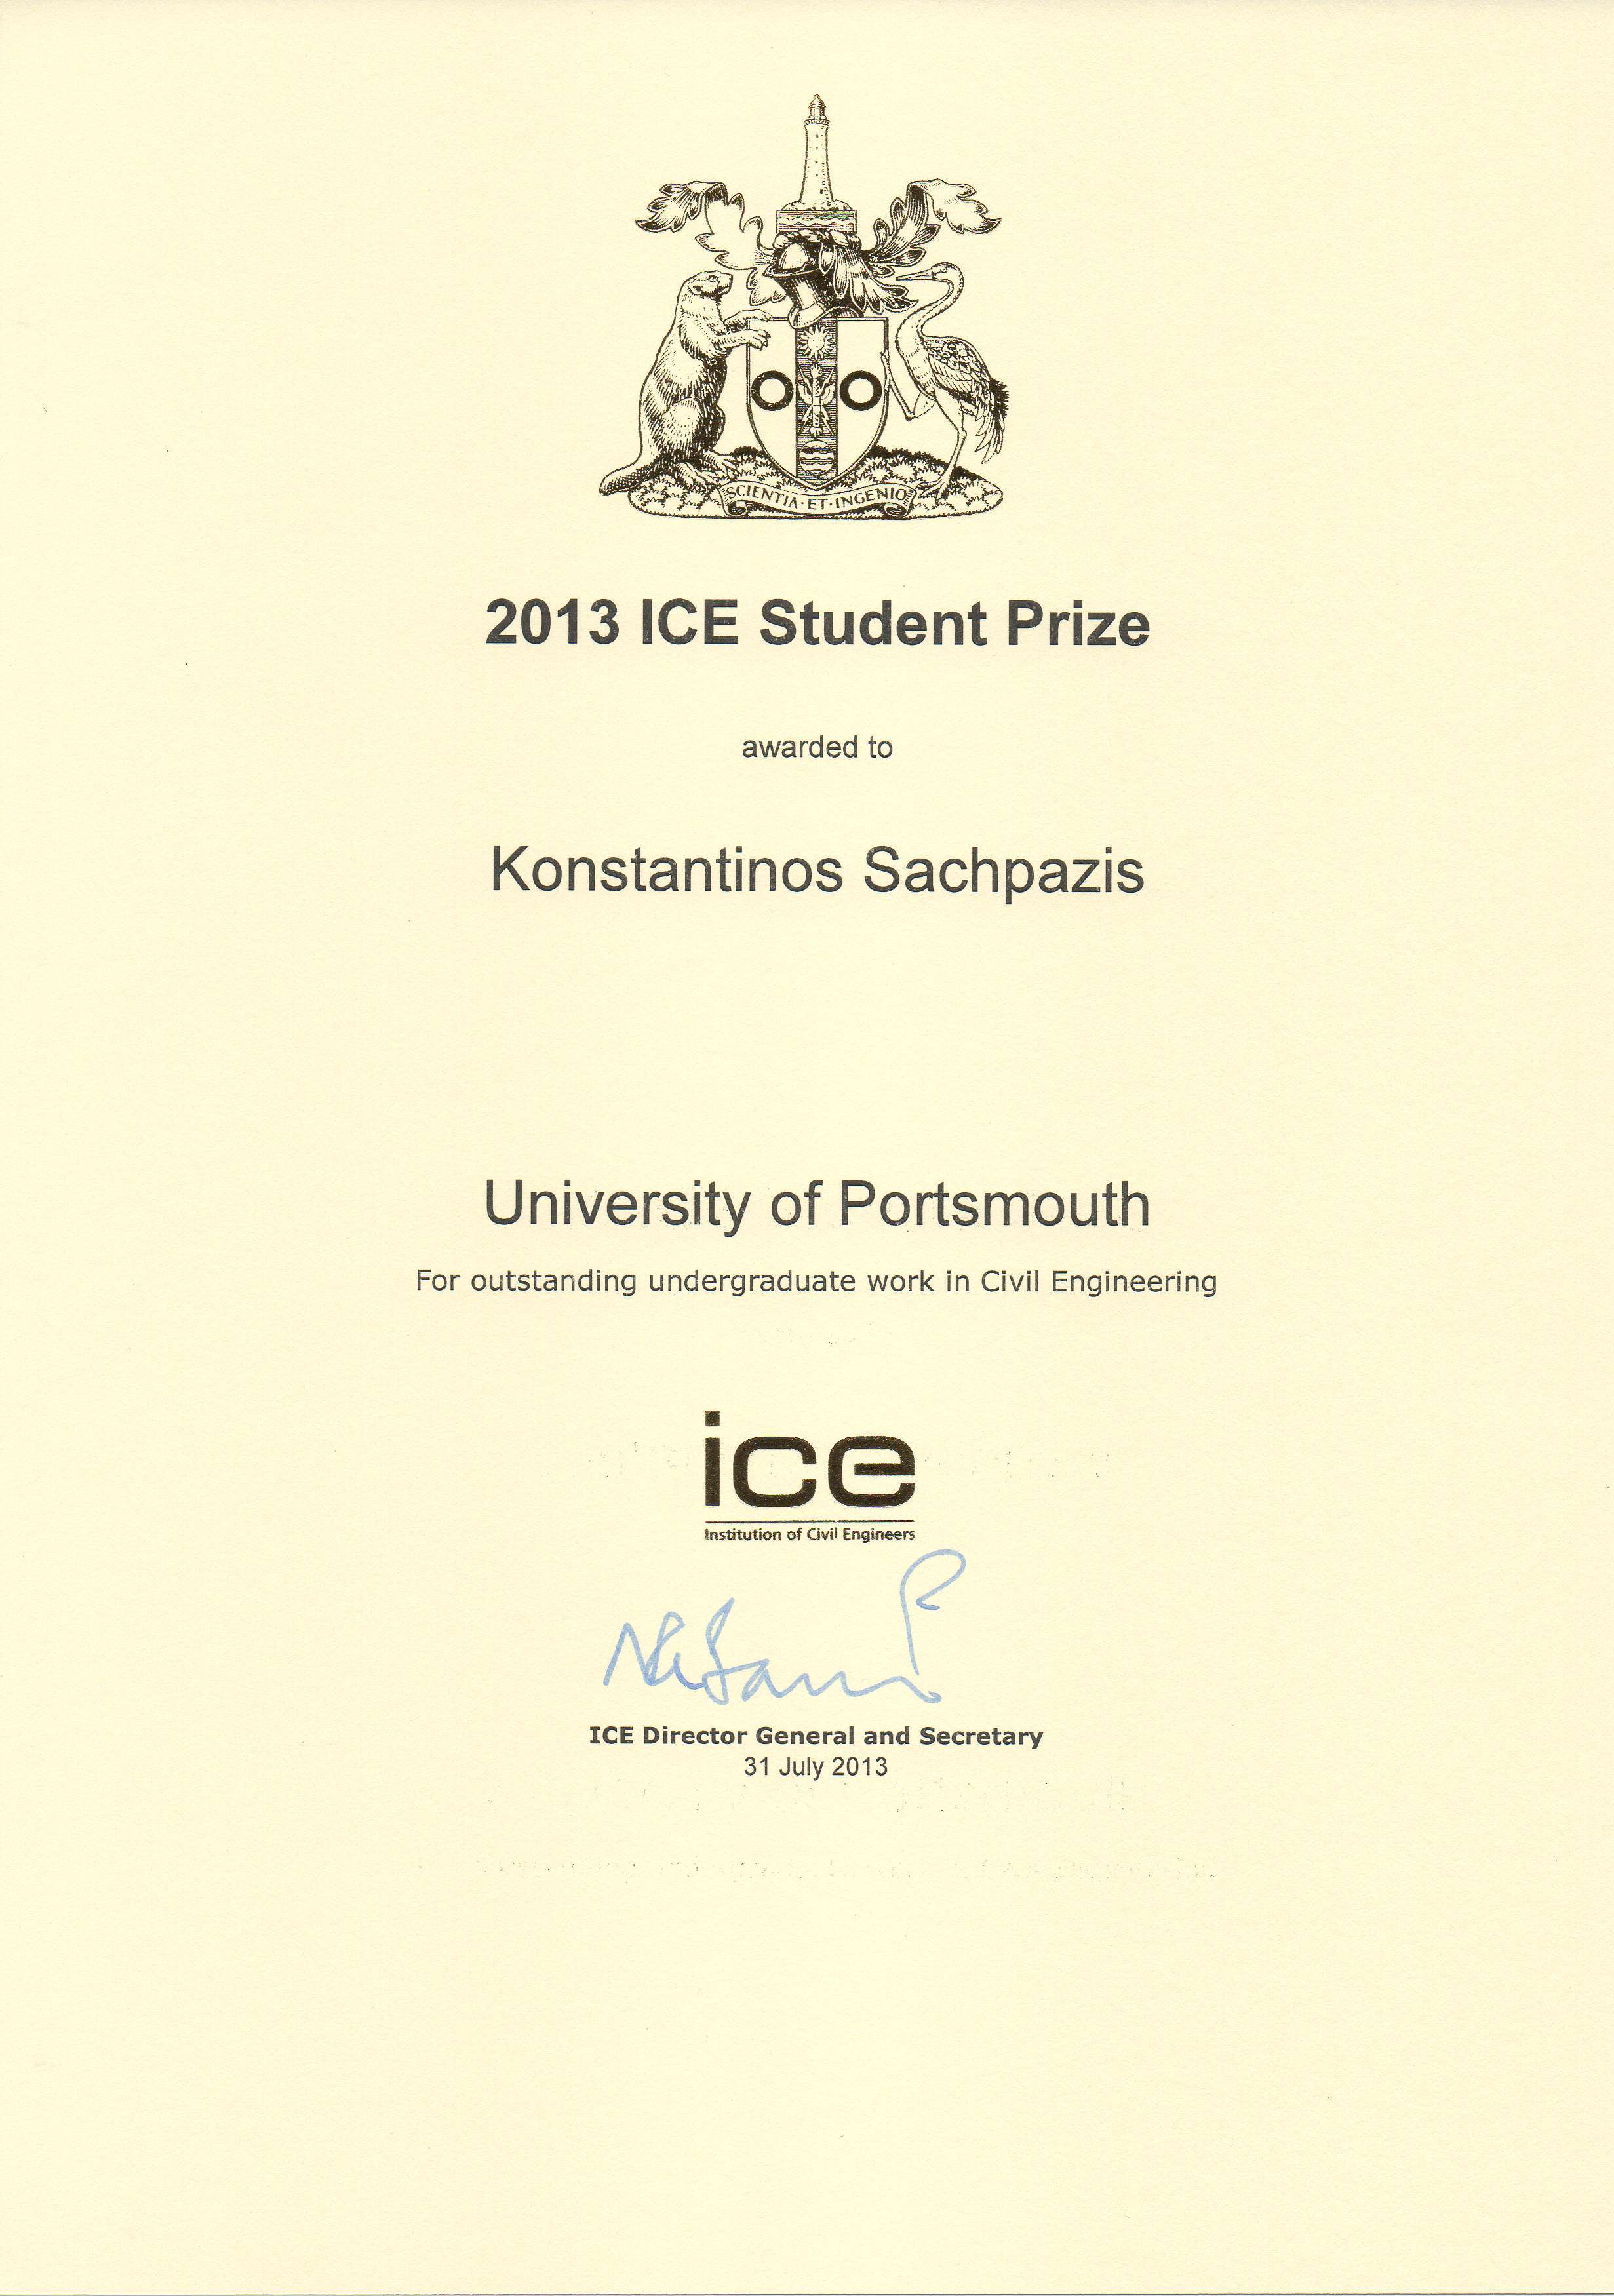 Human resources geodomisi engineer and an ice prize award xflitez Gallery